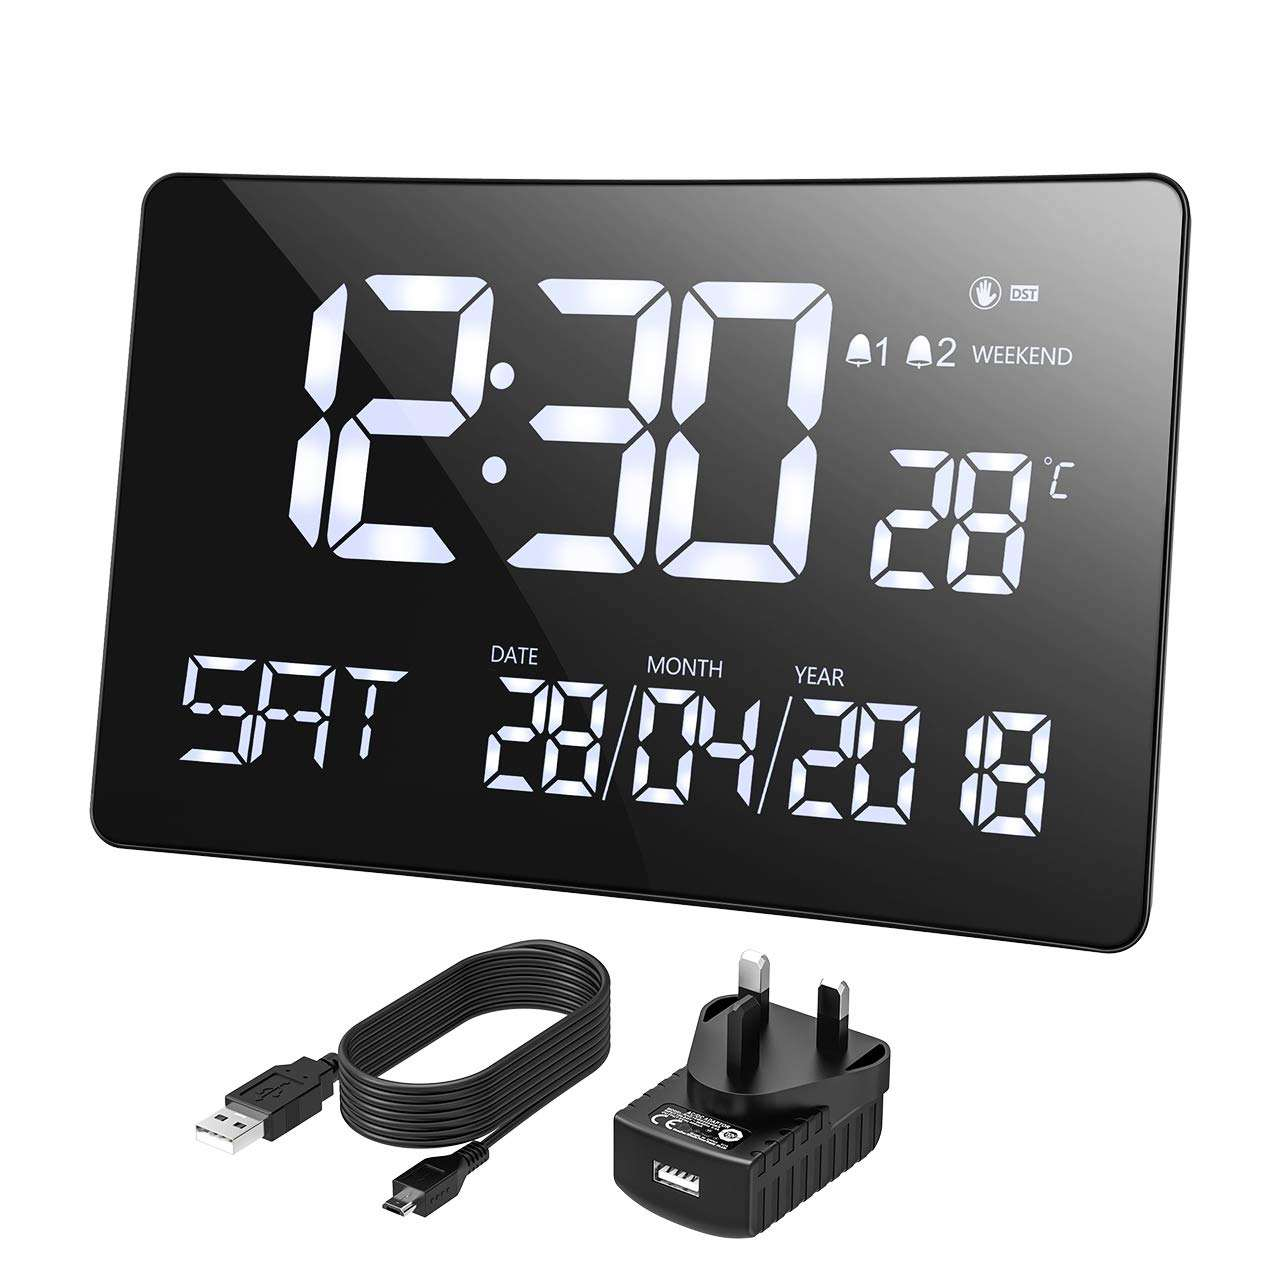 Multifunctional LED Display Digital Wall Alarm Clock For Decoration